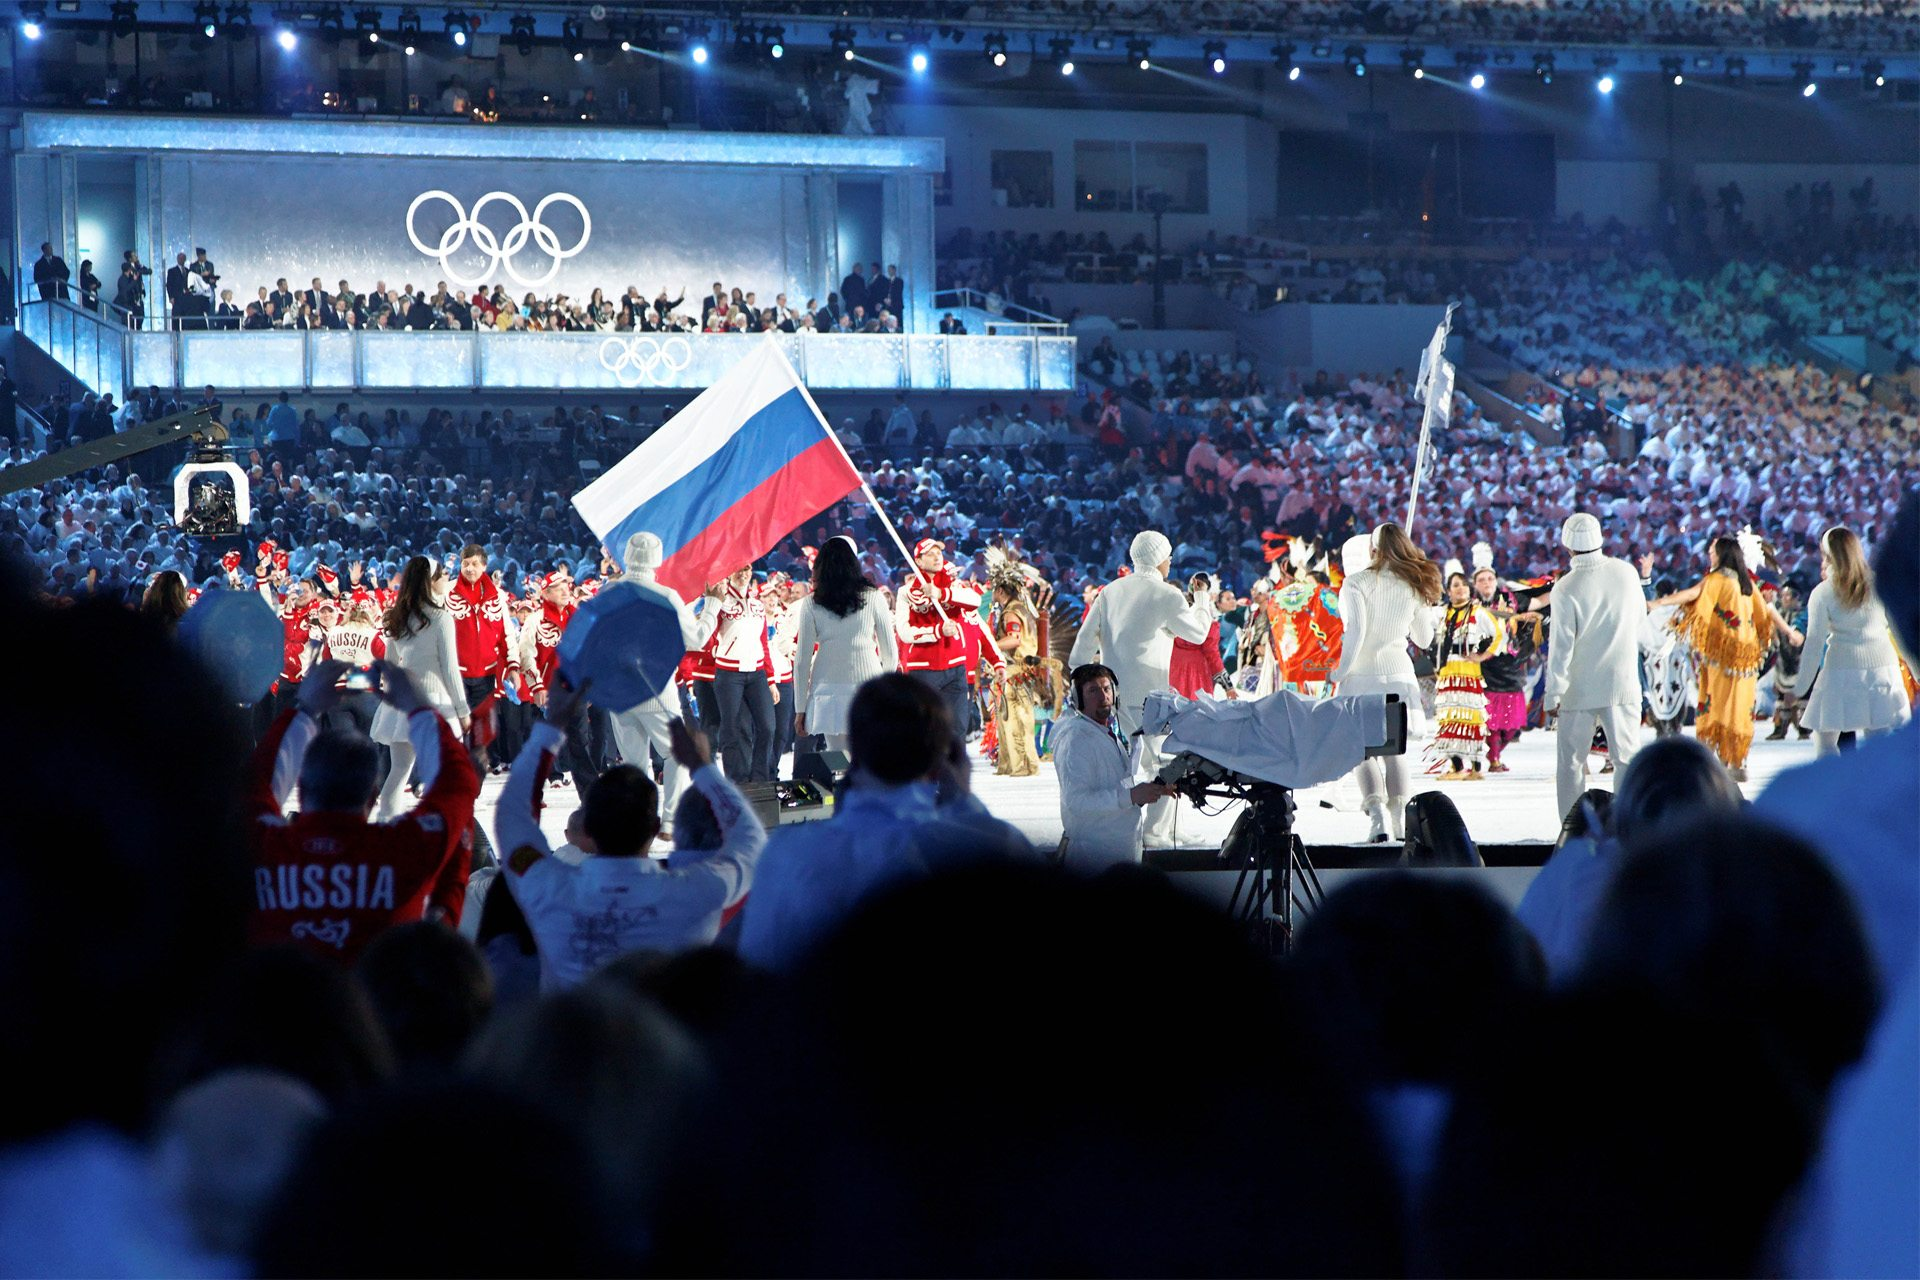 2010_Olympic_Winter_Games_Opening_Ceremony_-_Russia_entering